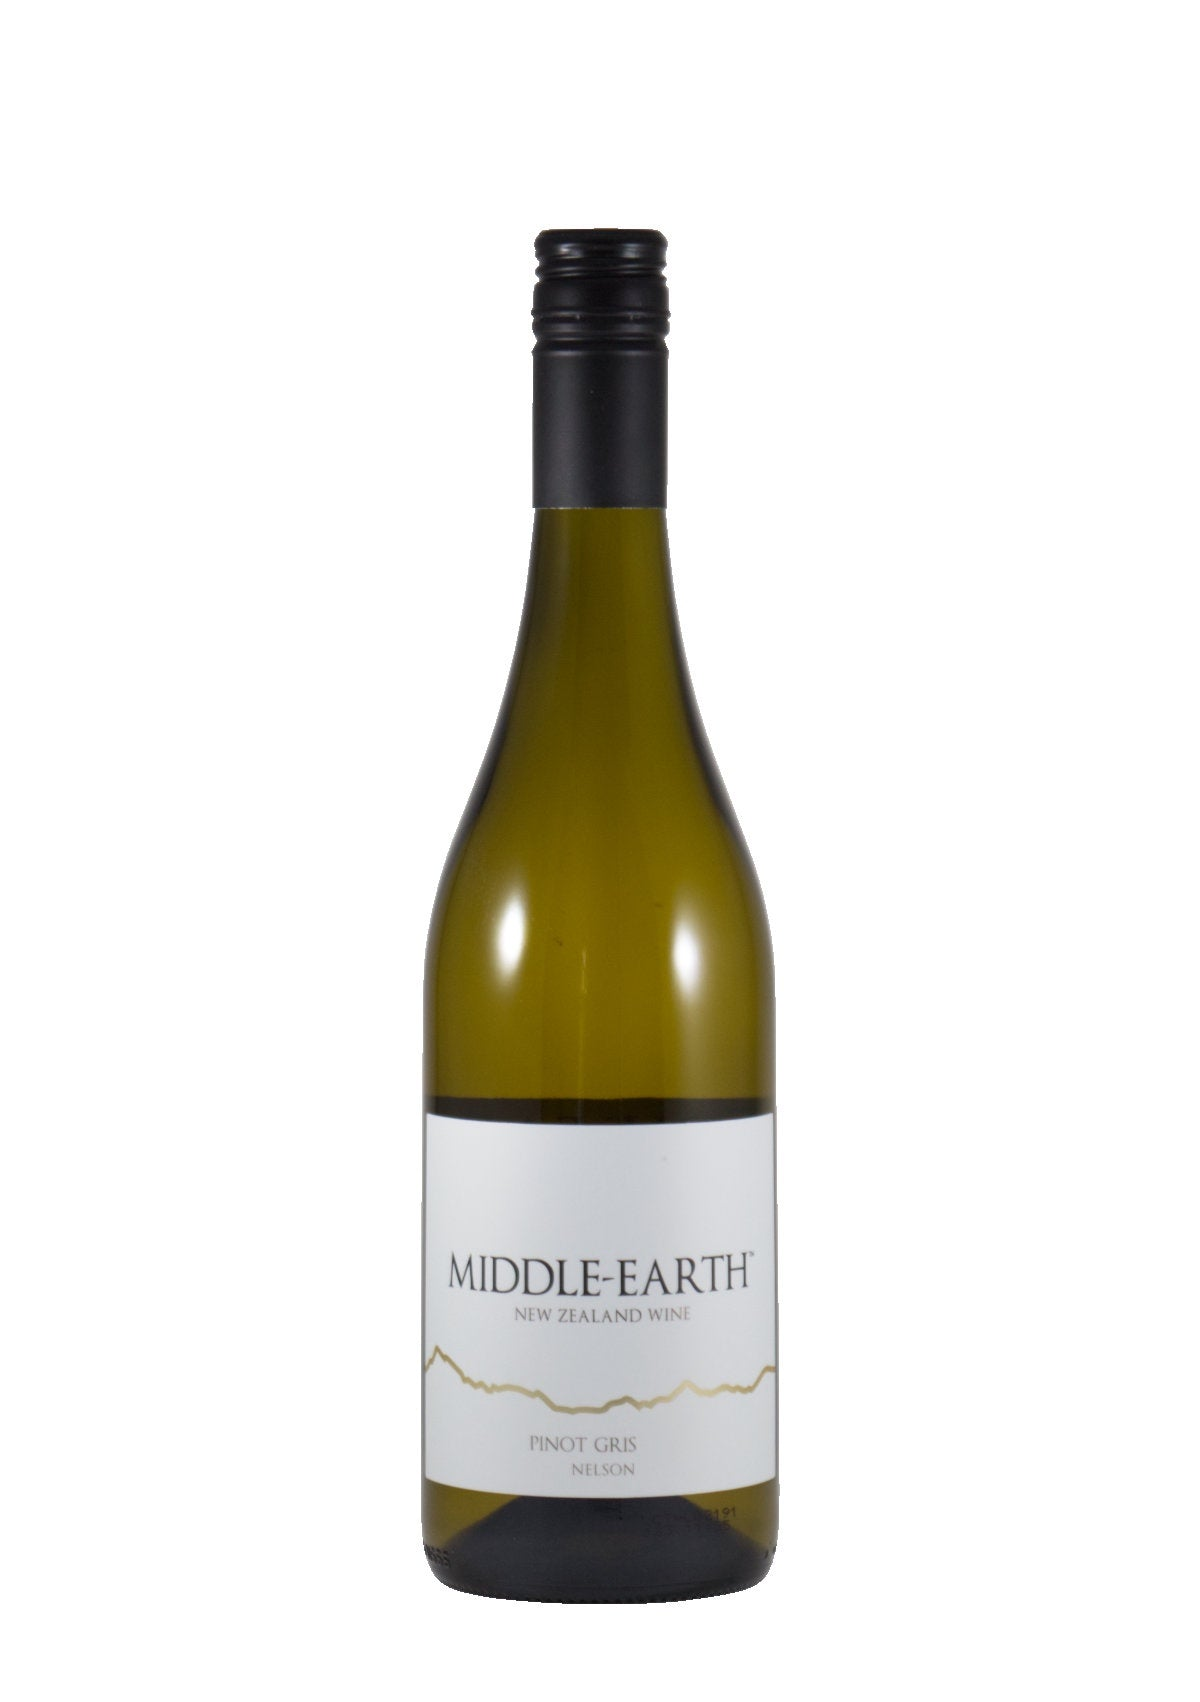 *3W* 2019 Middle Earth Pinot Gris (Nelson, New Zealand)